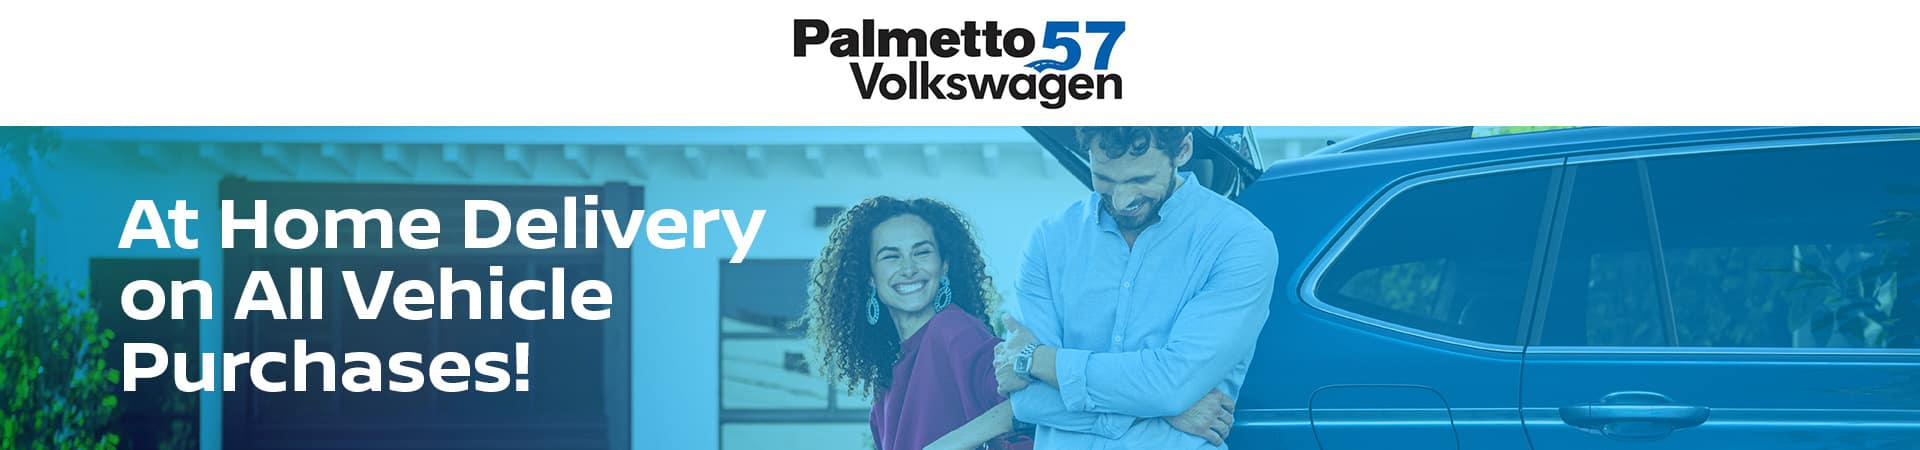 palmetto57-vw-march-homedelivery-banner (1)